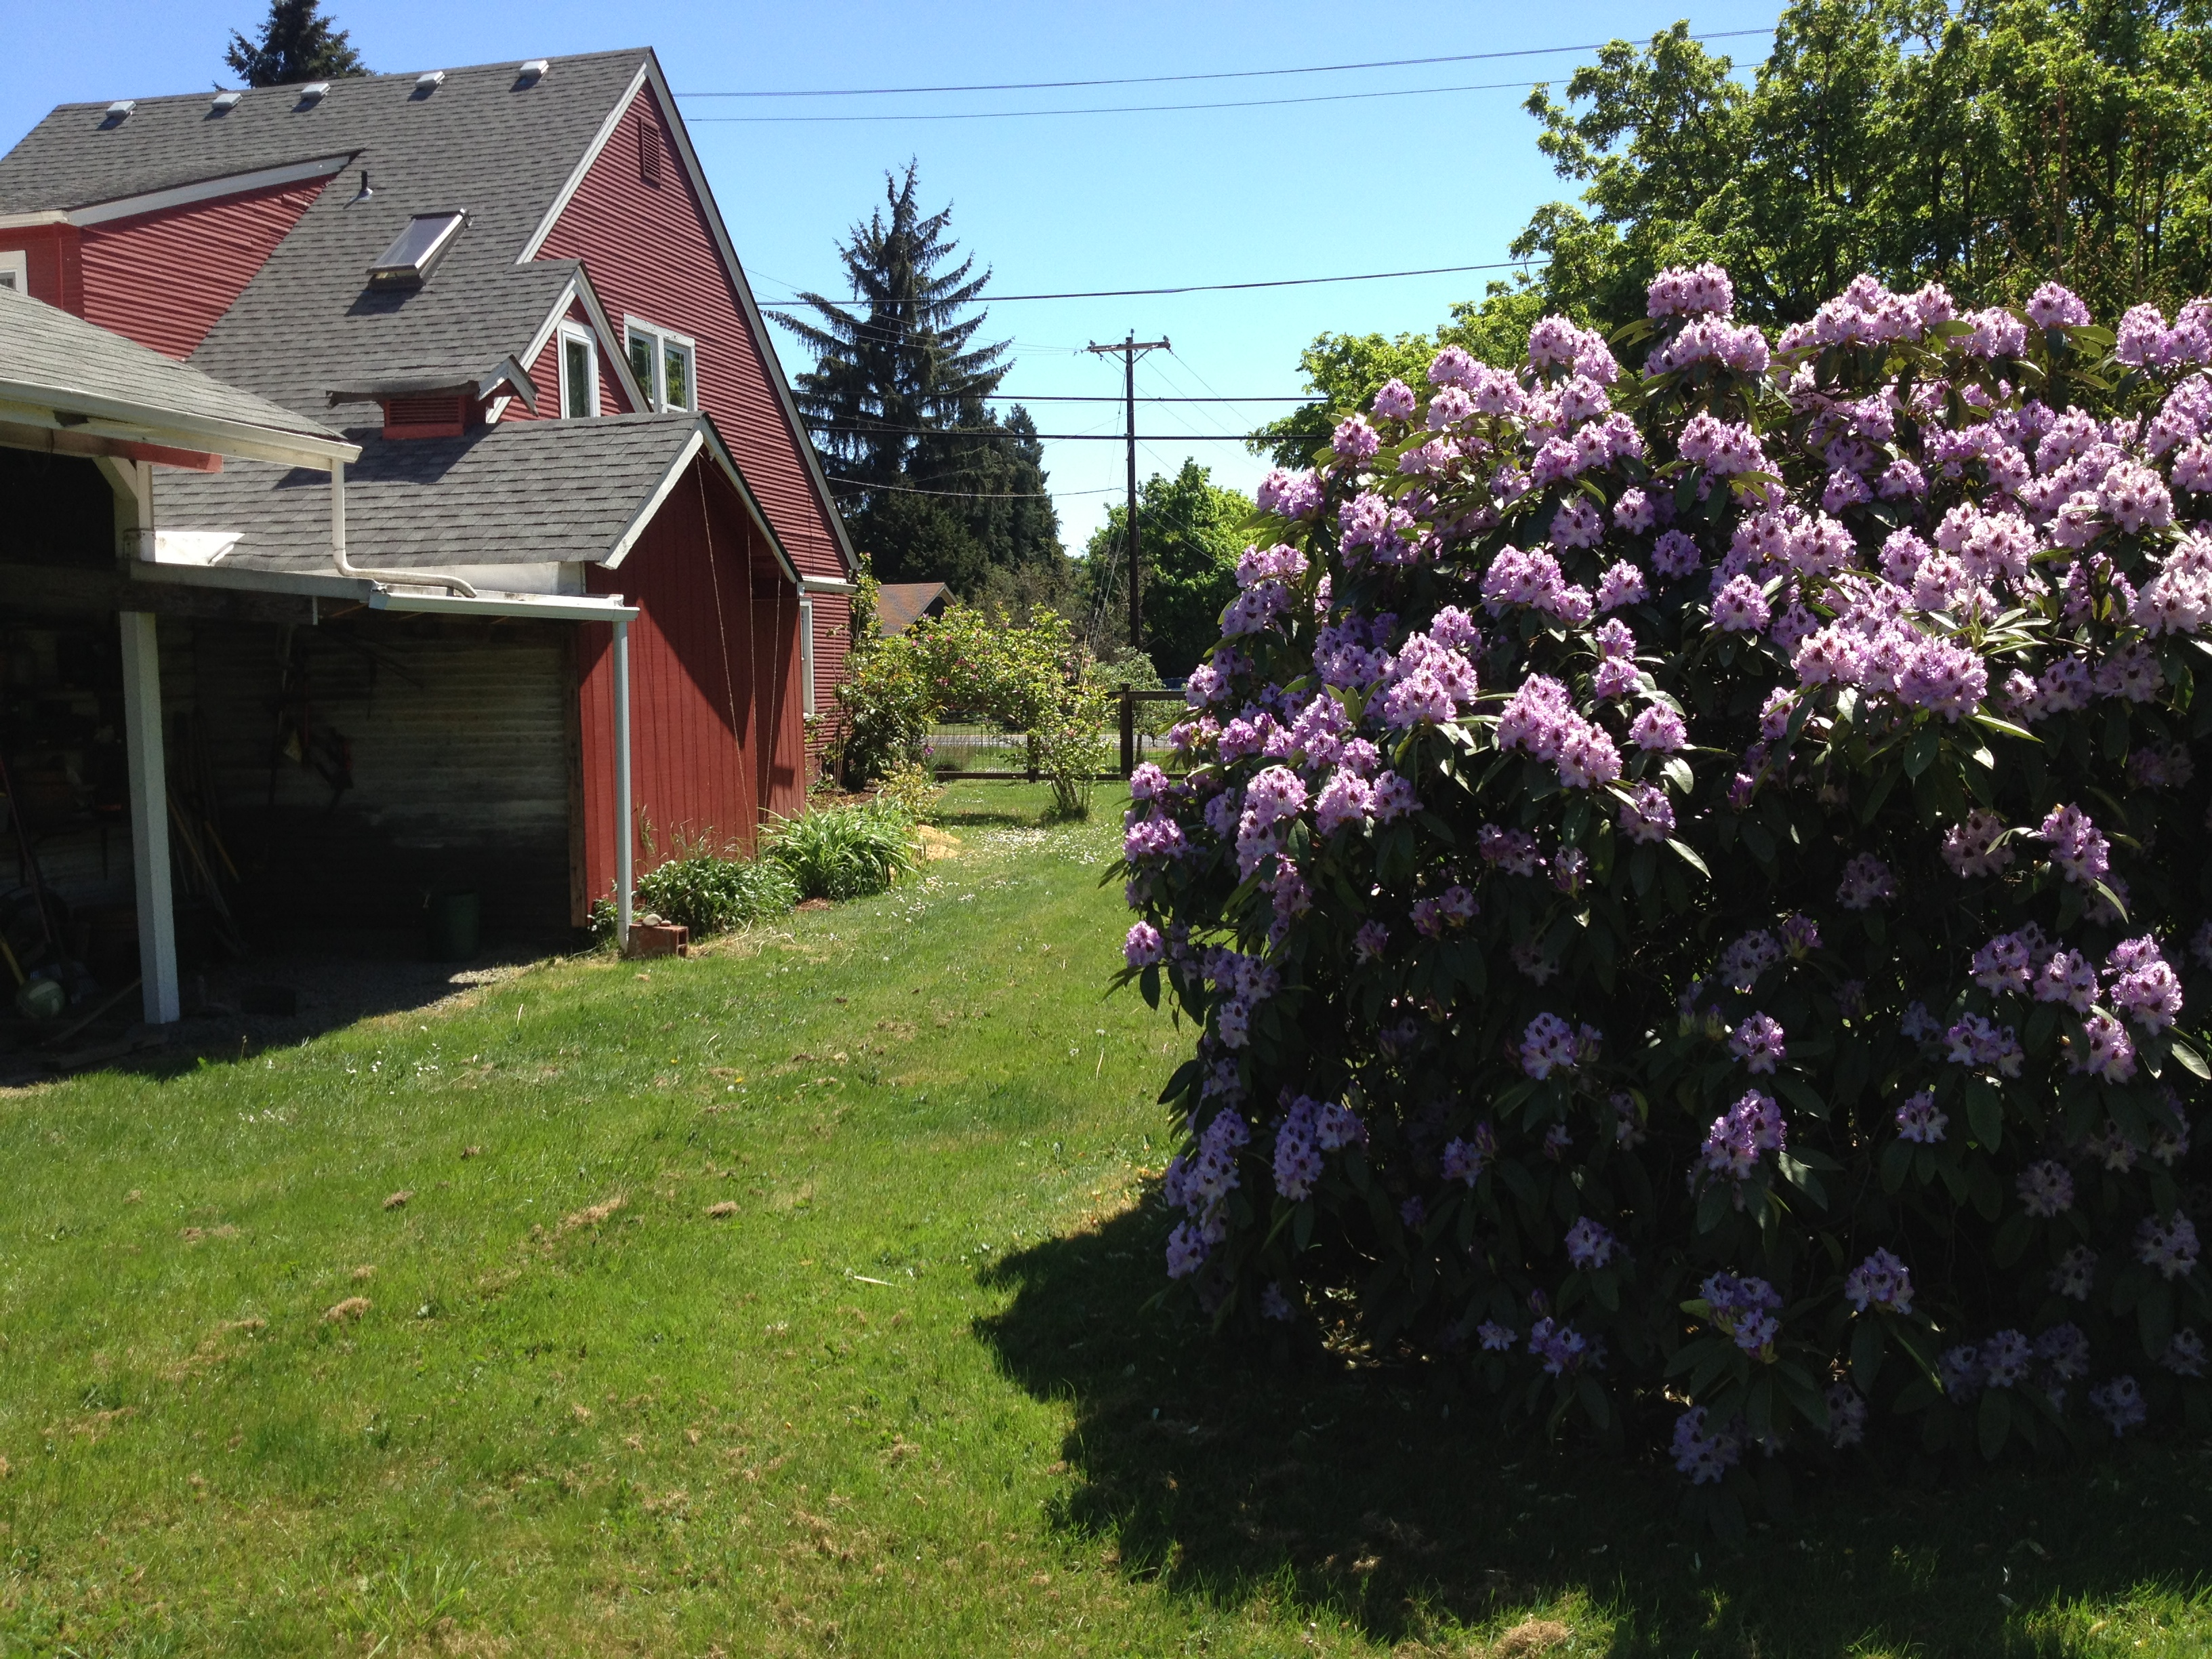 The gargantuan purple rhododendron (why is that word so hard to spell?) on the side of the house.